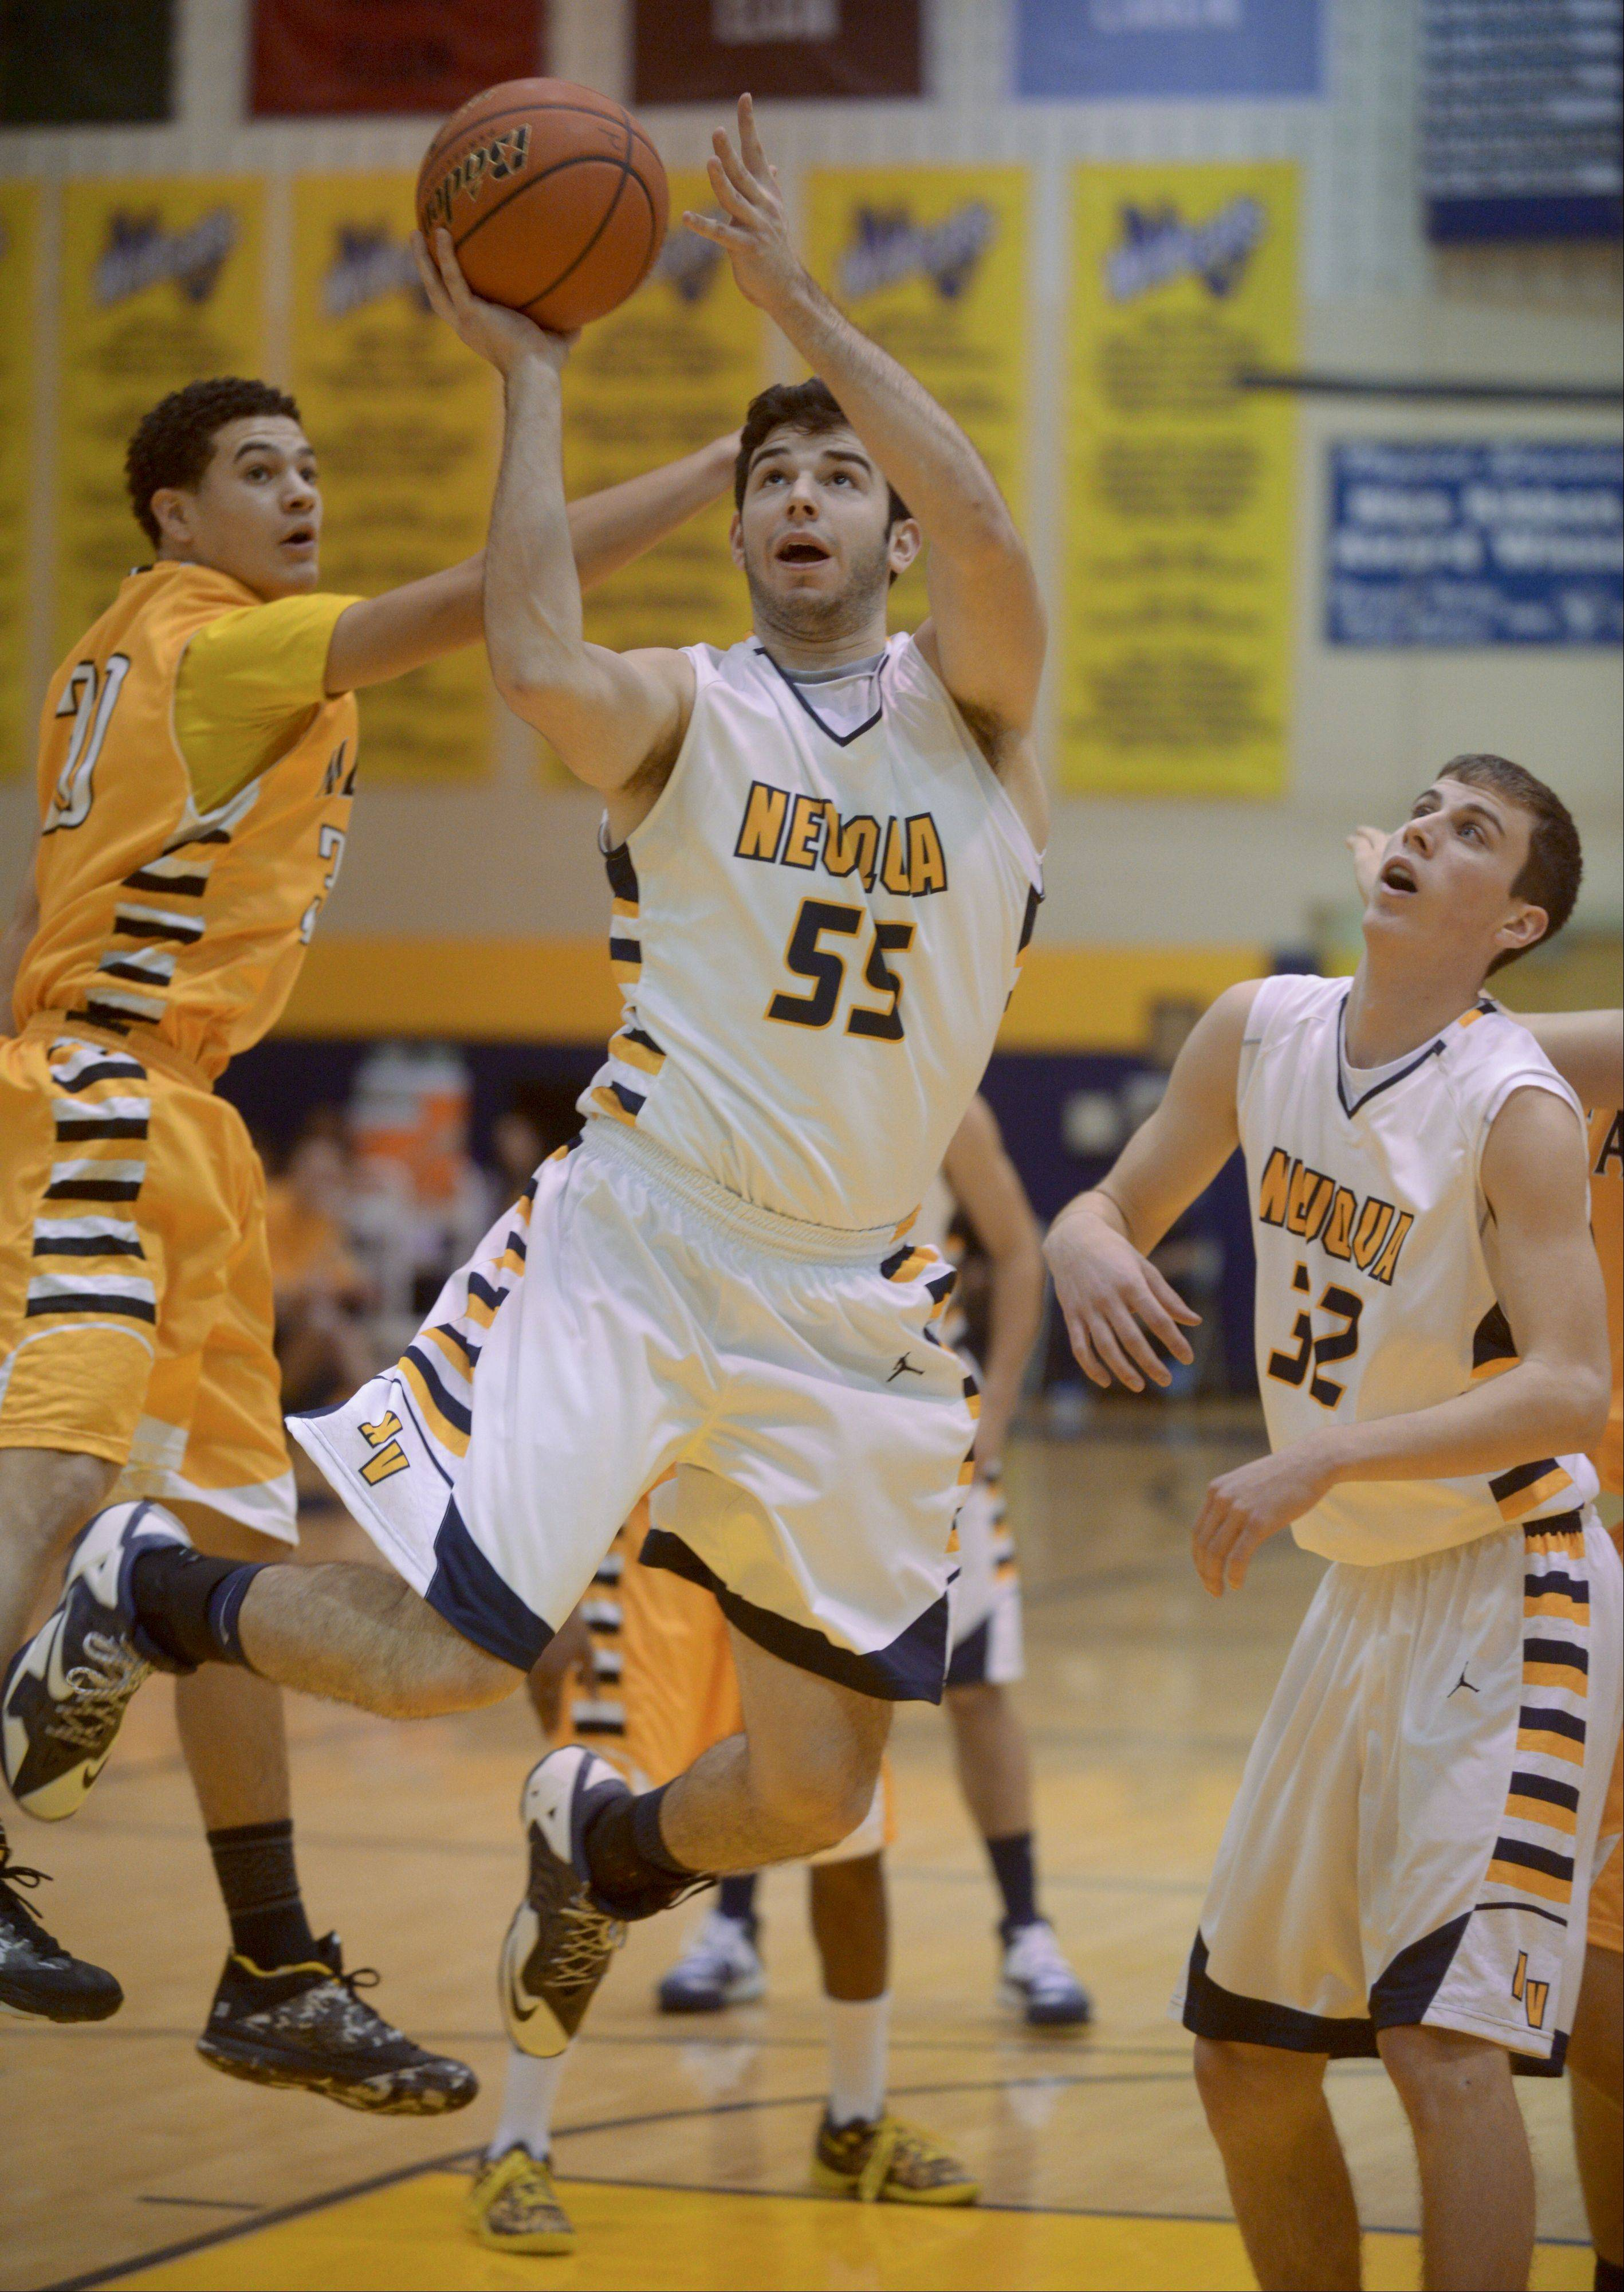 Neuqua Valley stays calm, overcomes Metea Valley